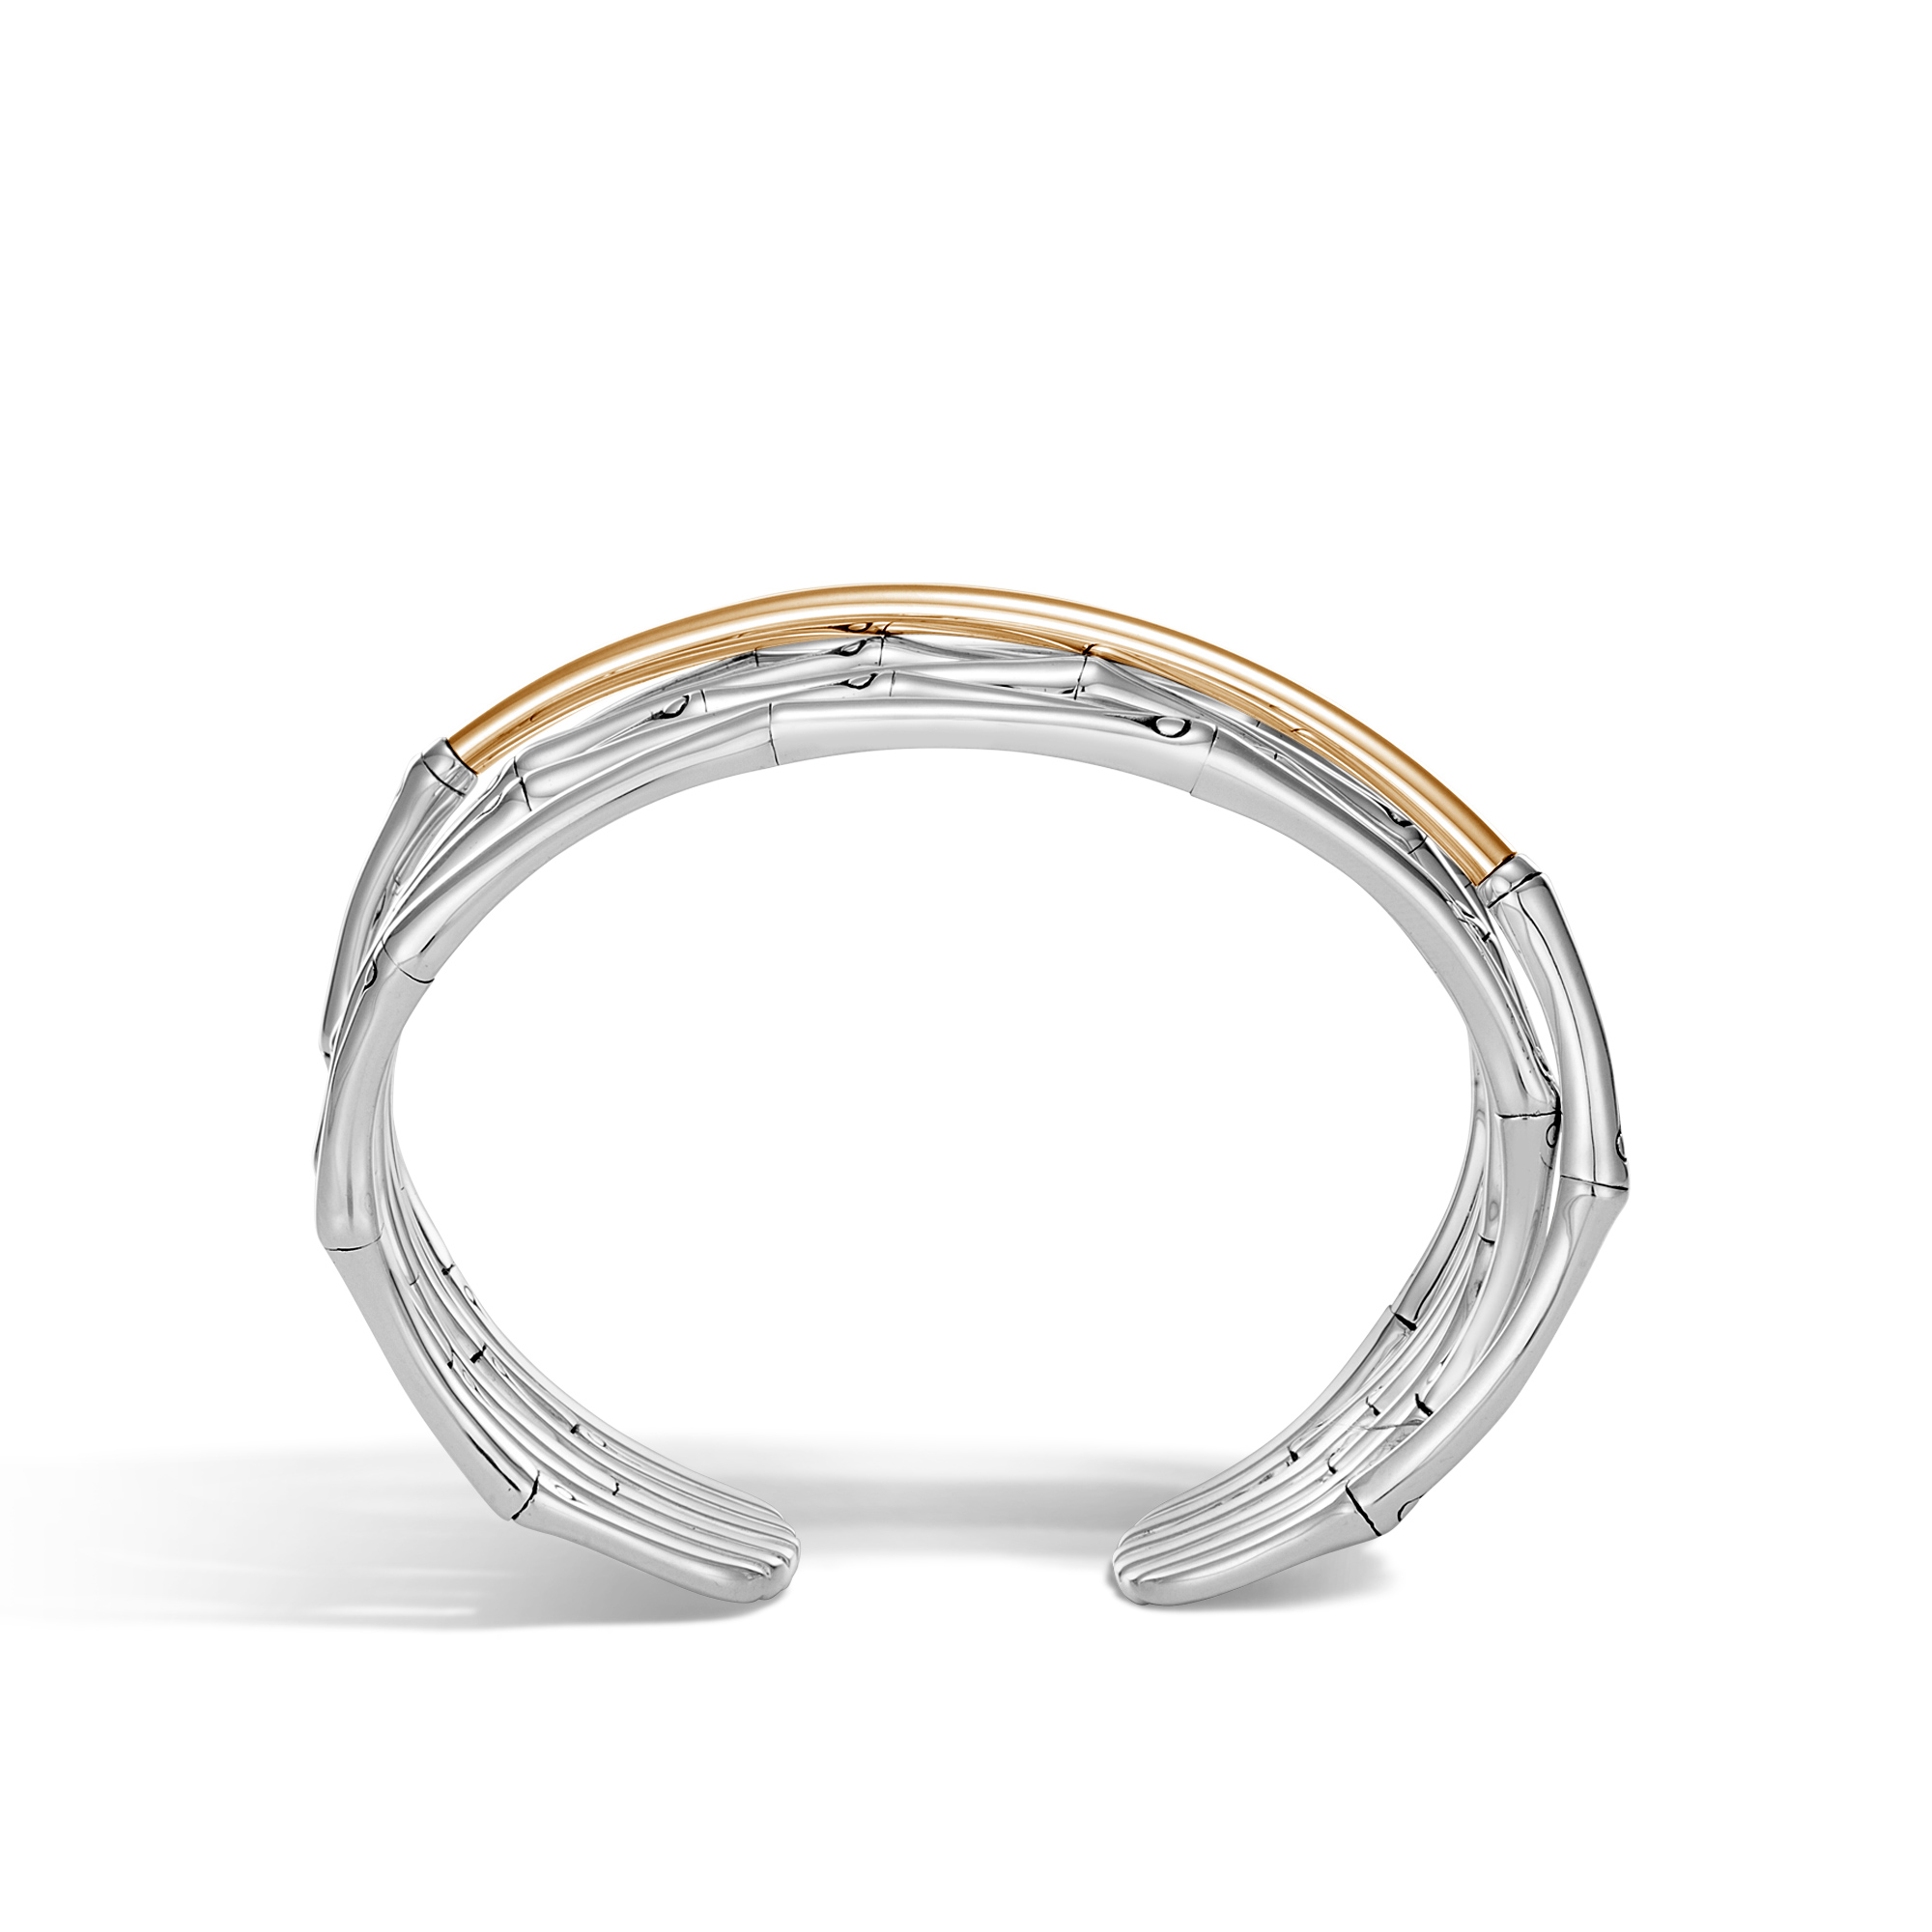 Bamboo Cuff in Silver and 18K Gold, , large